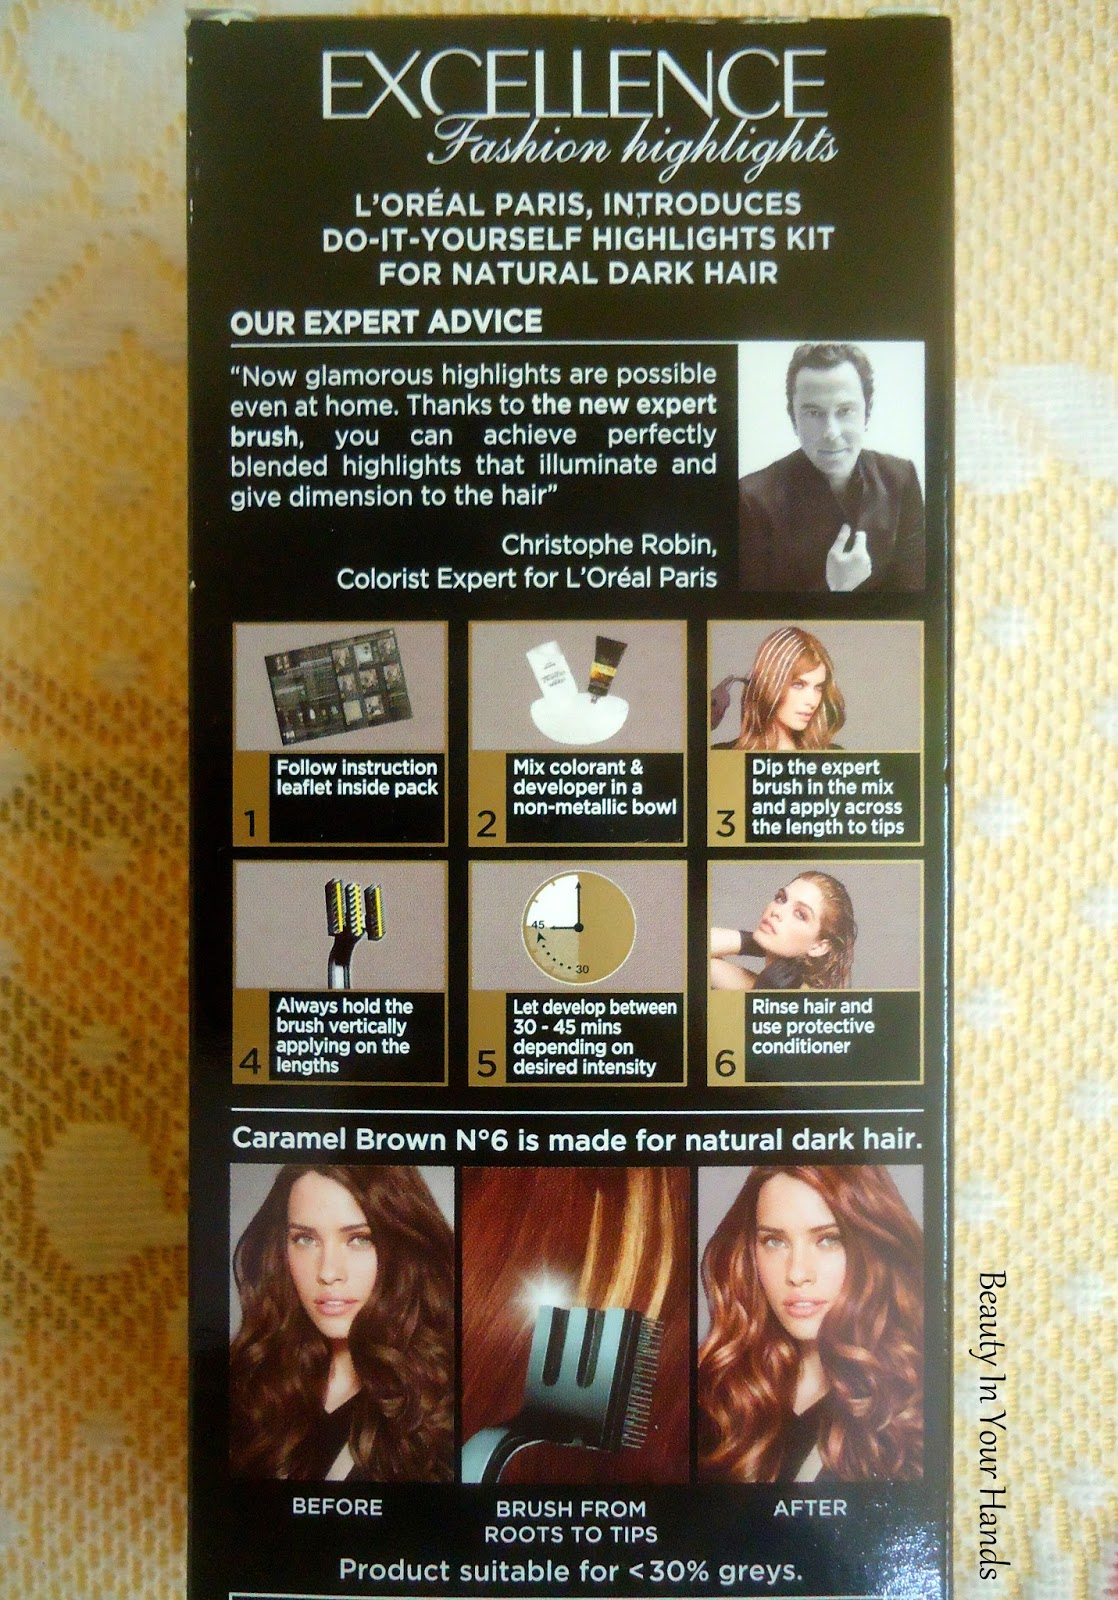 Beauty in your hands loreal paris excellence fashion highlights directions solutioingenieria Gallery